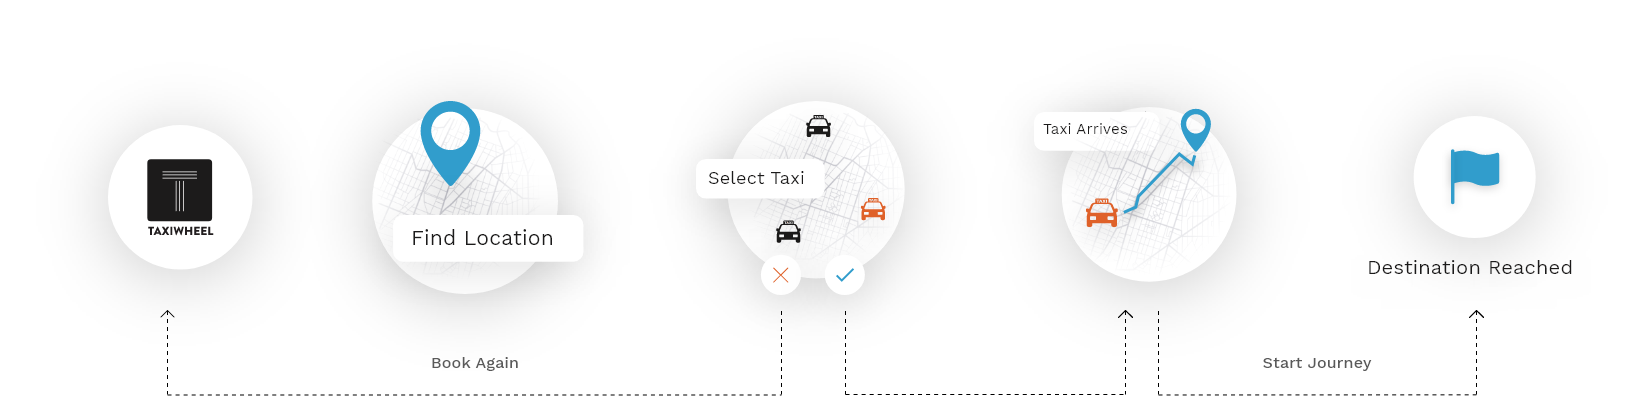 how_taxi_app_works